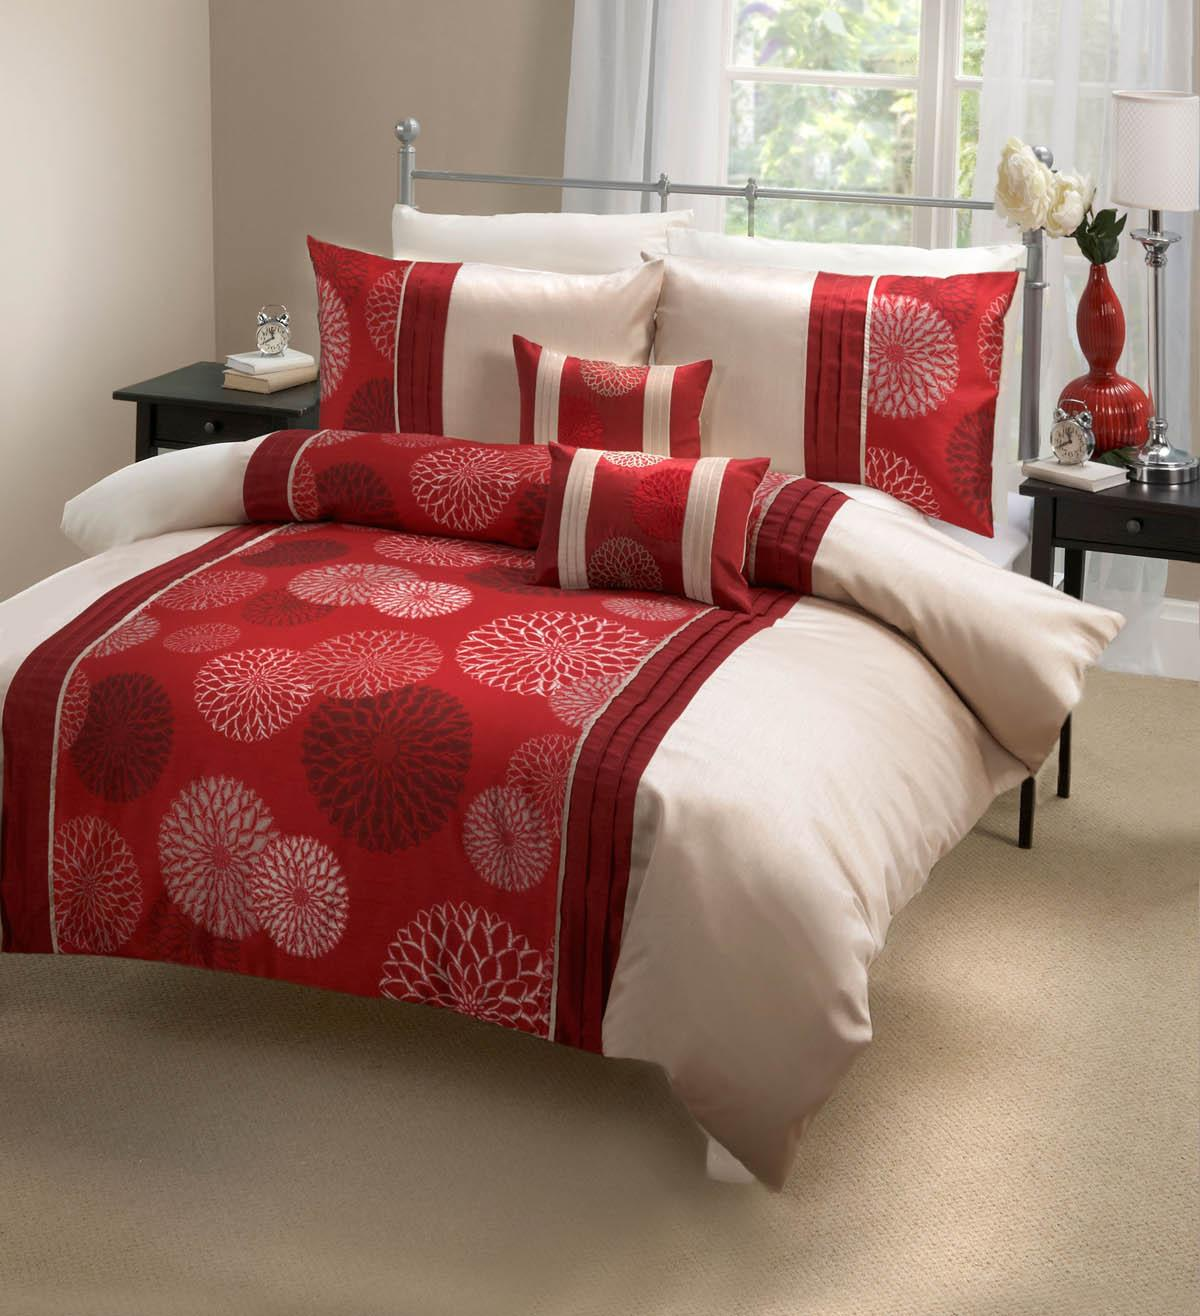 100 Red Bedding Poppies Red Bedding By Revelle Bedspread Co